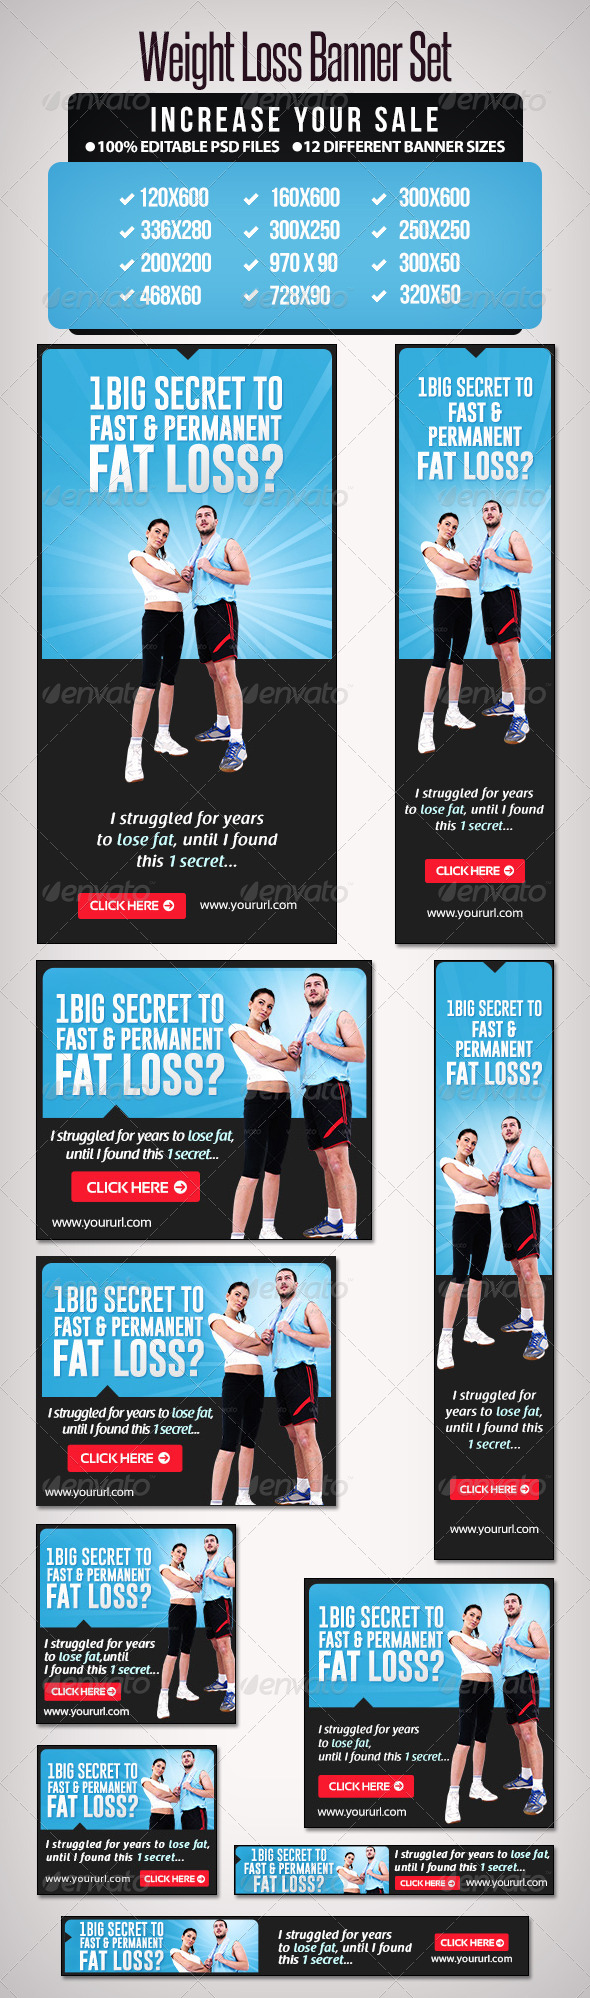 Weight Loss Banner Set 5 - Banners & Ads Web Elements